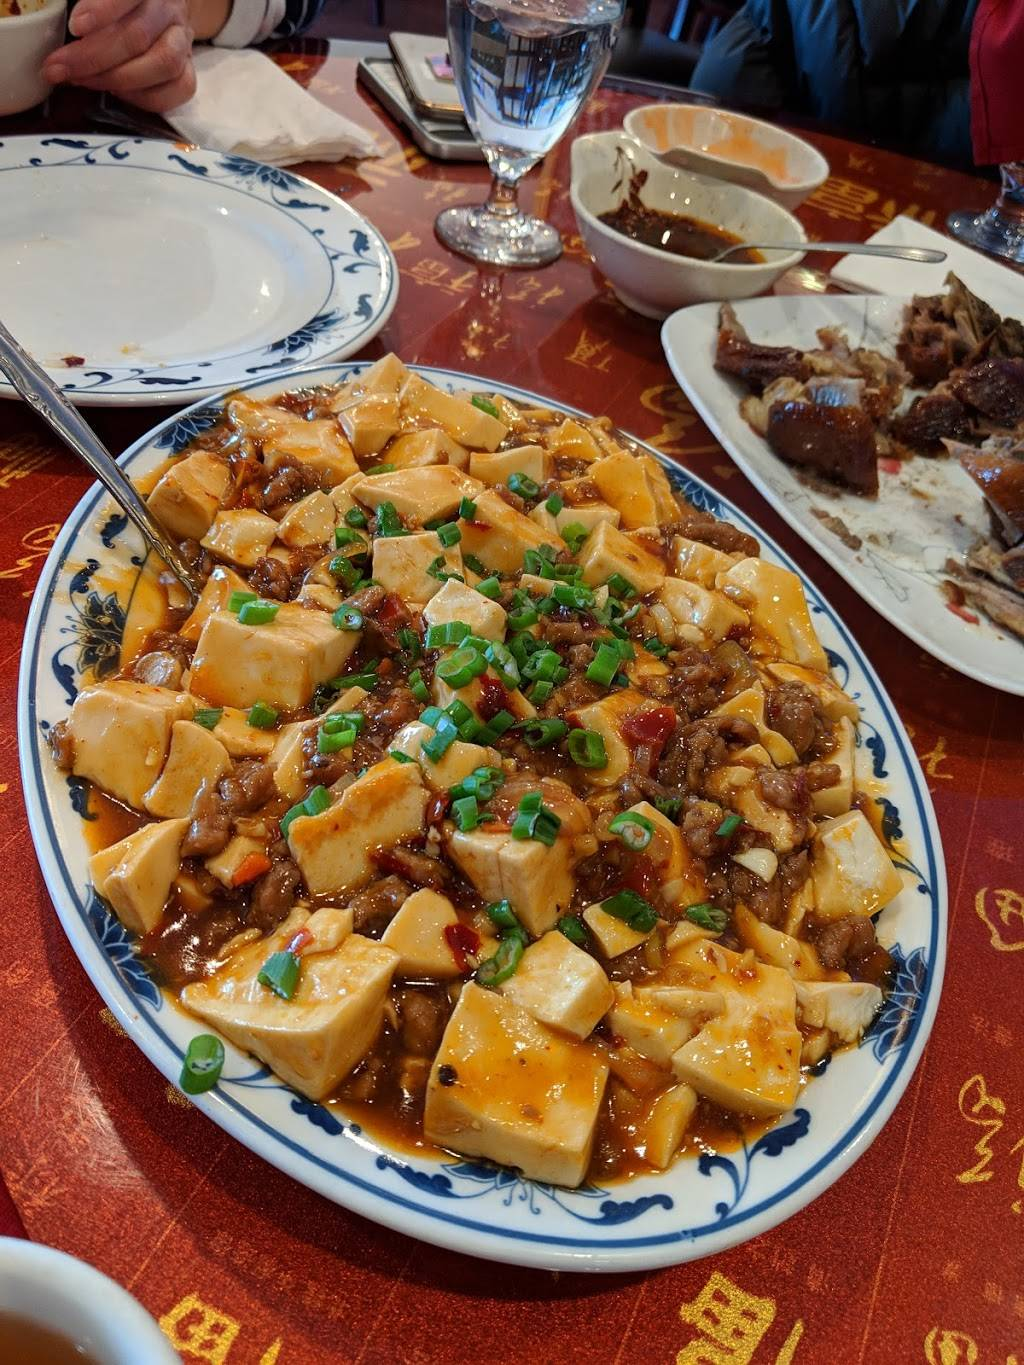 Luckys China Inn | restaurant | 5865 Robert Oliver Pl, Columbia, MD 21045, USA | 4109975454 OR +1 410-997-5454